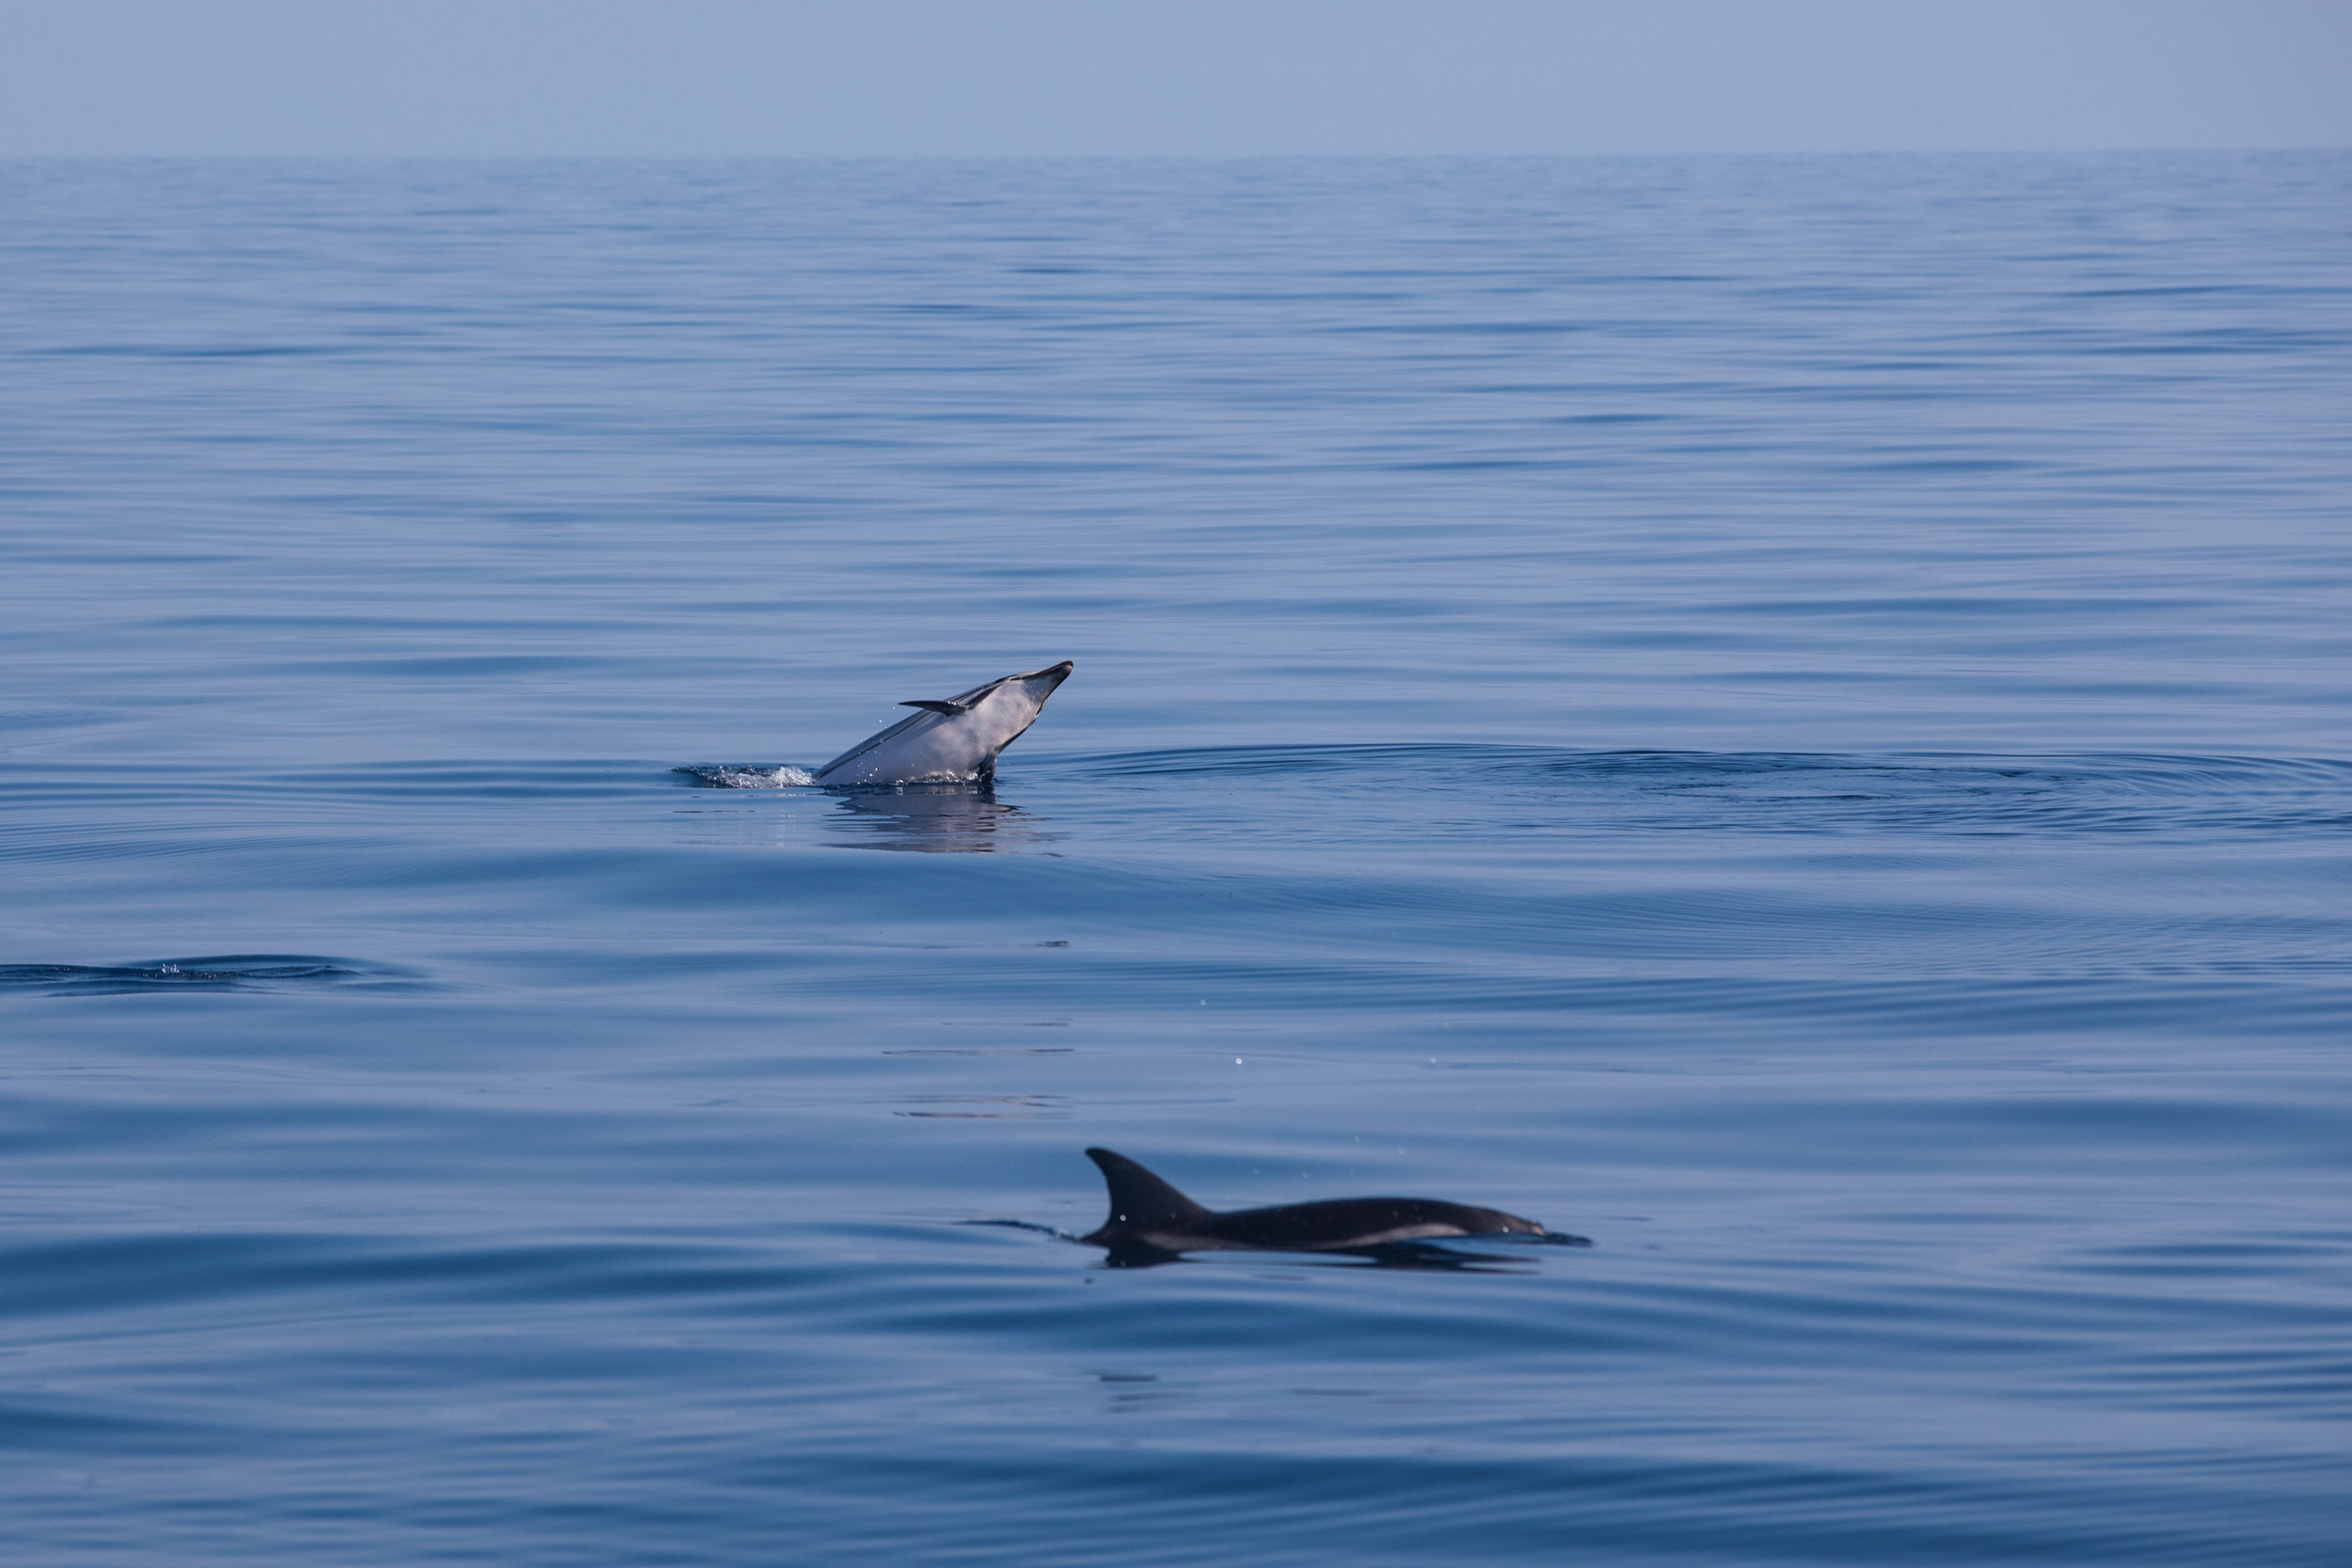 Striped dolphins playing in the Pelagos Sanctuary in the Mediterranean Sea.